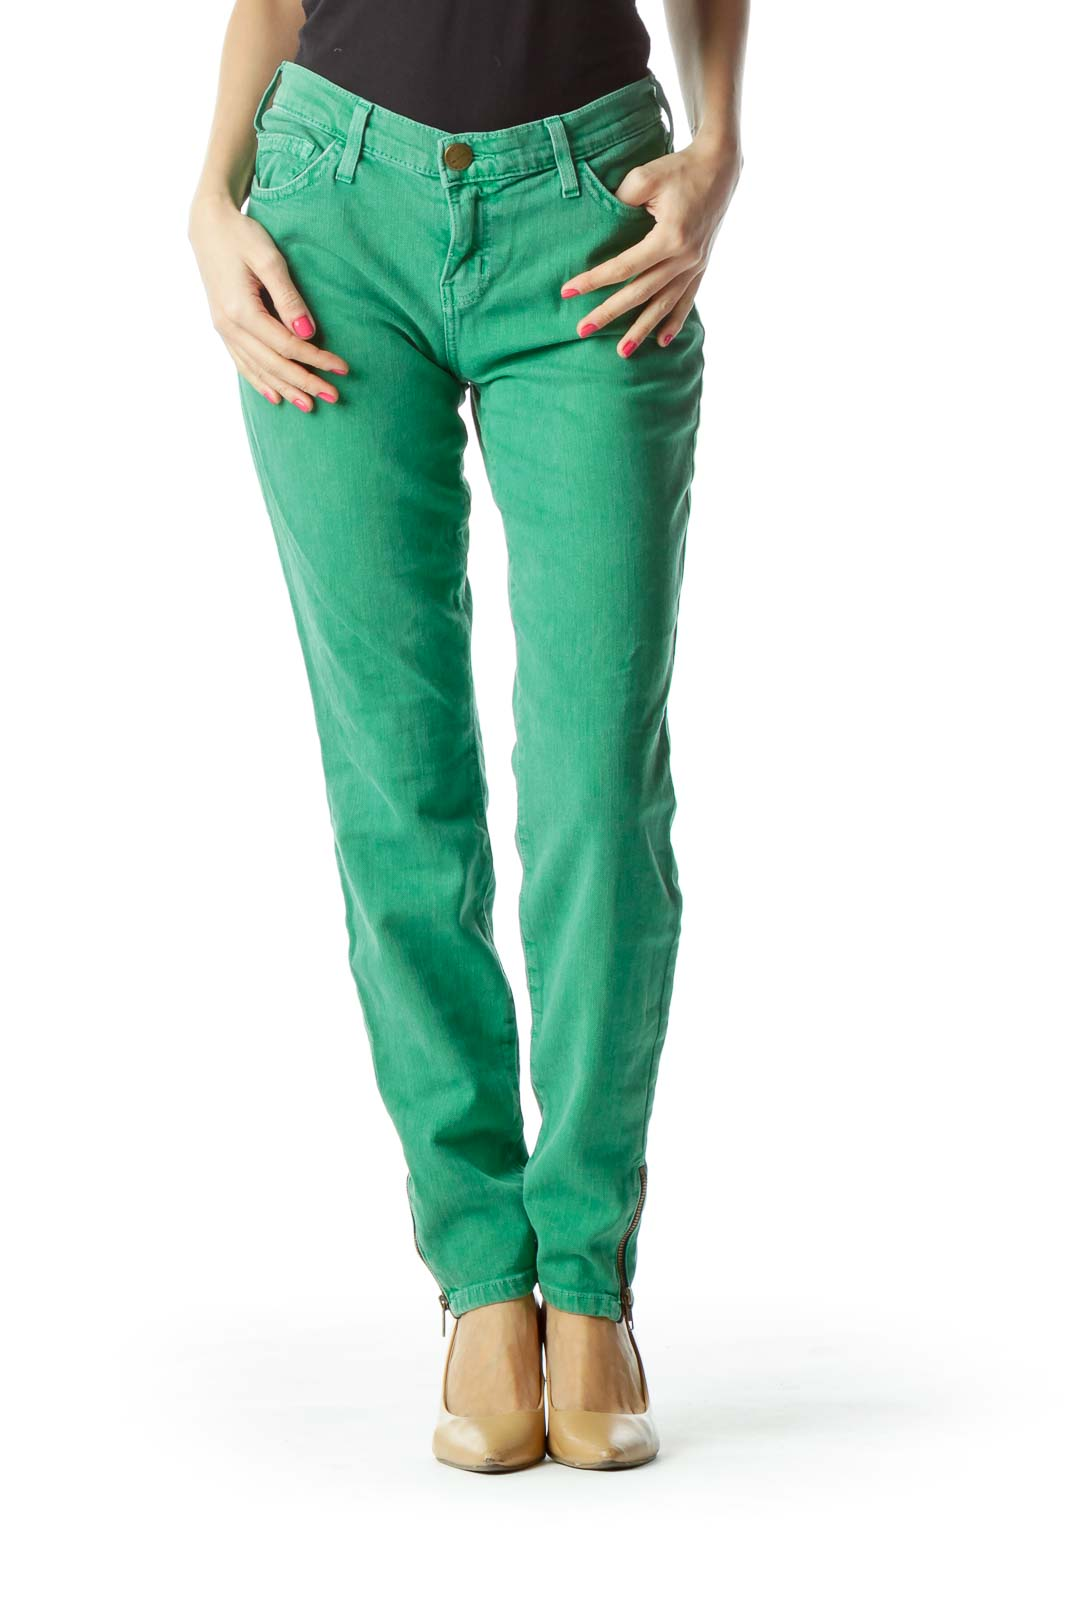 Green Skinny Zipper Ankle Jeans Front